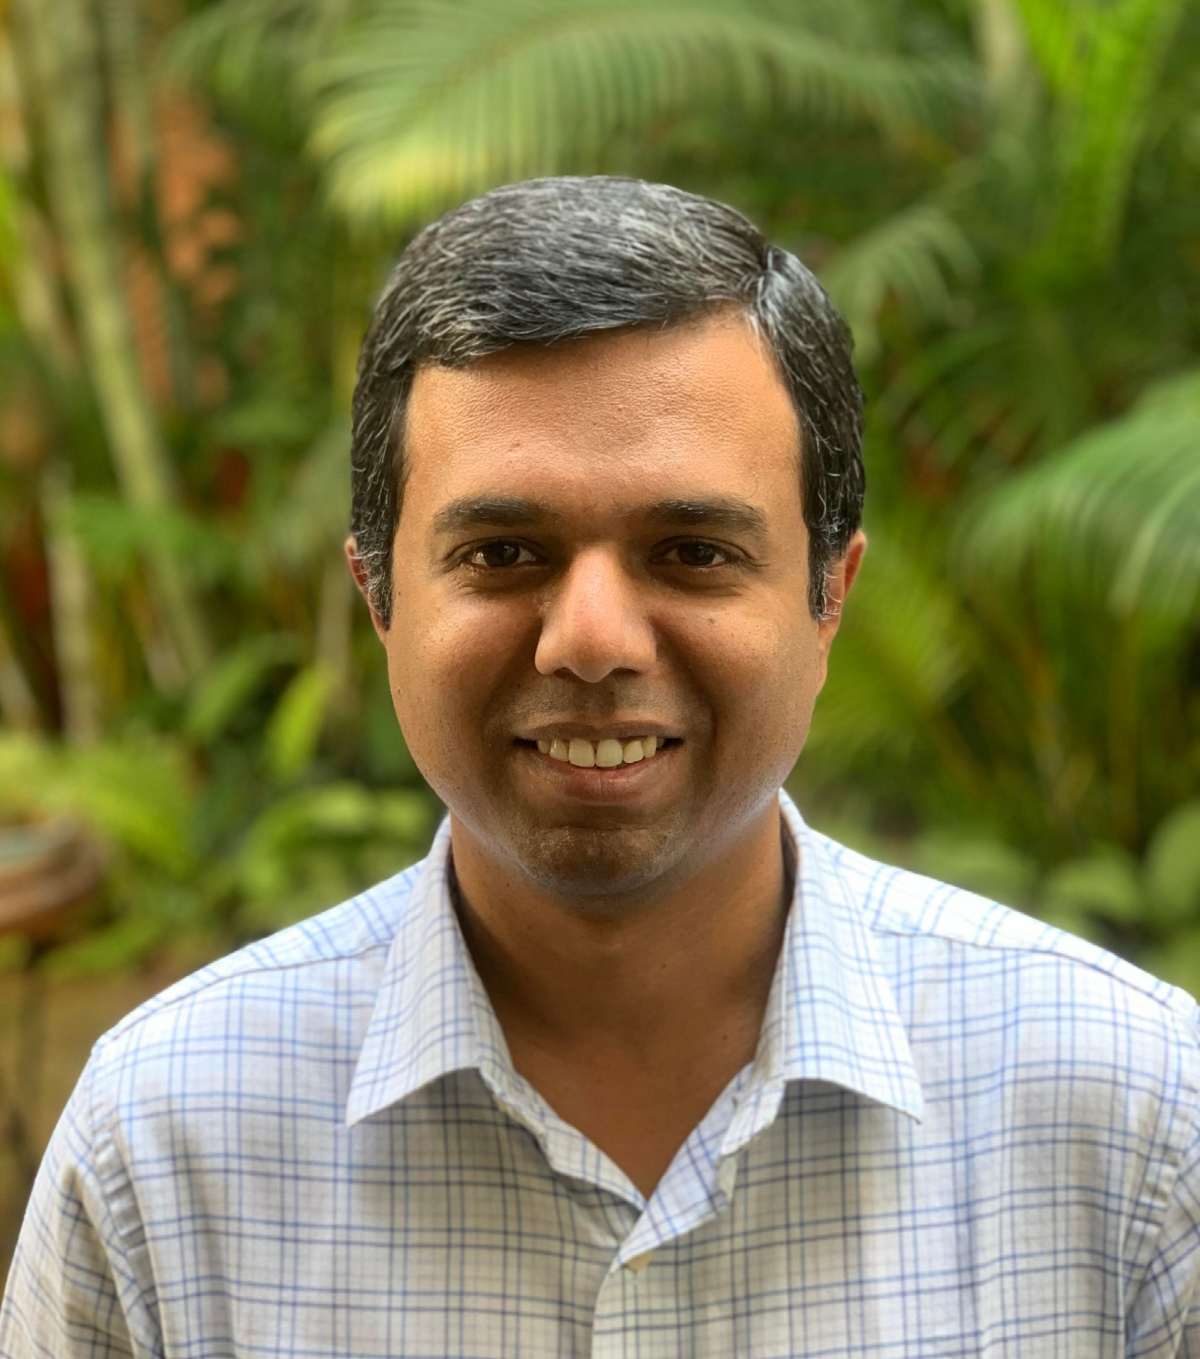 Chaitanya Ramalingegowda, co-founder and director, Wakefit.co